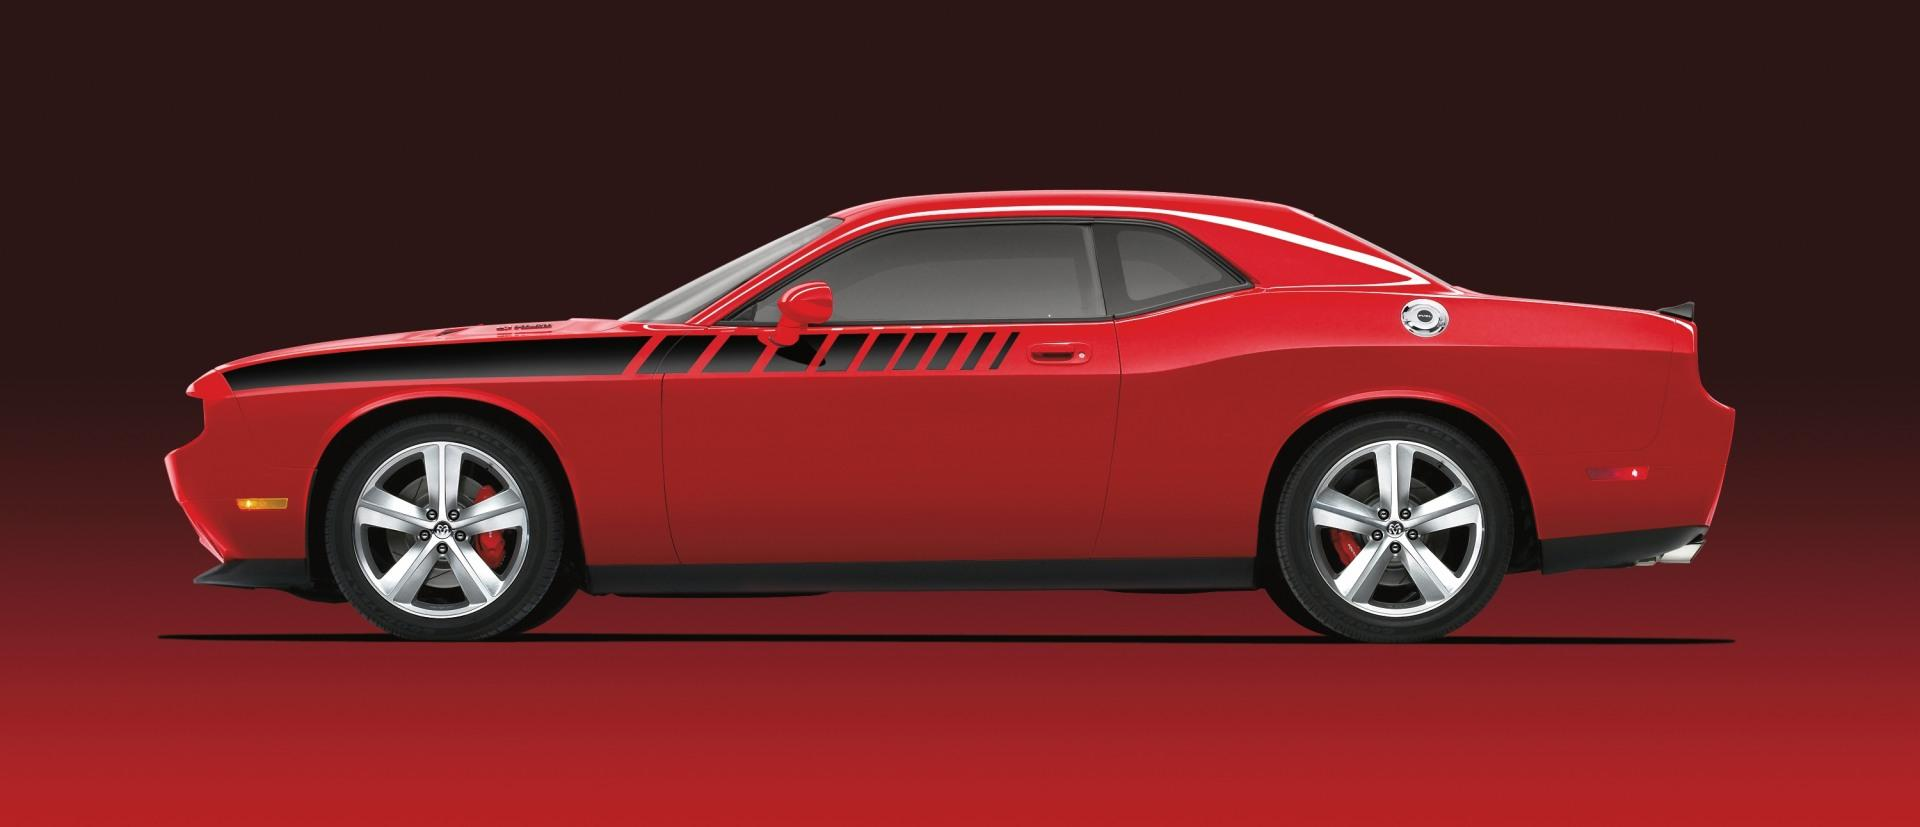 2010 Dodge Challenger Appearance Package News And Information